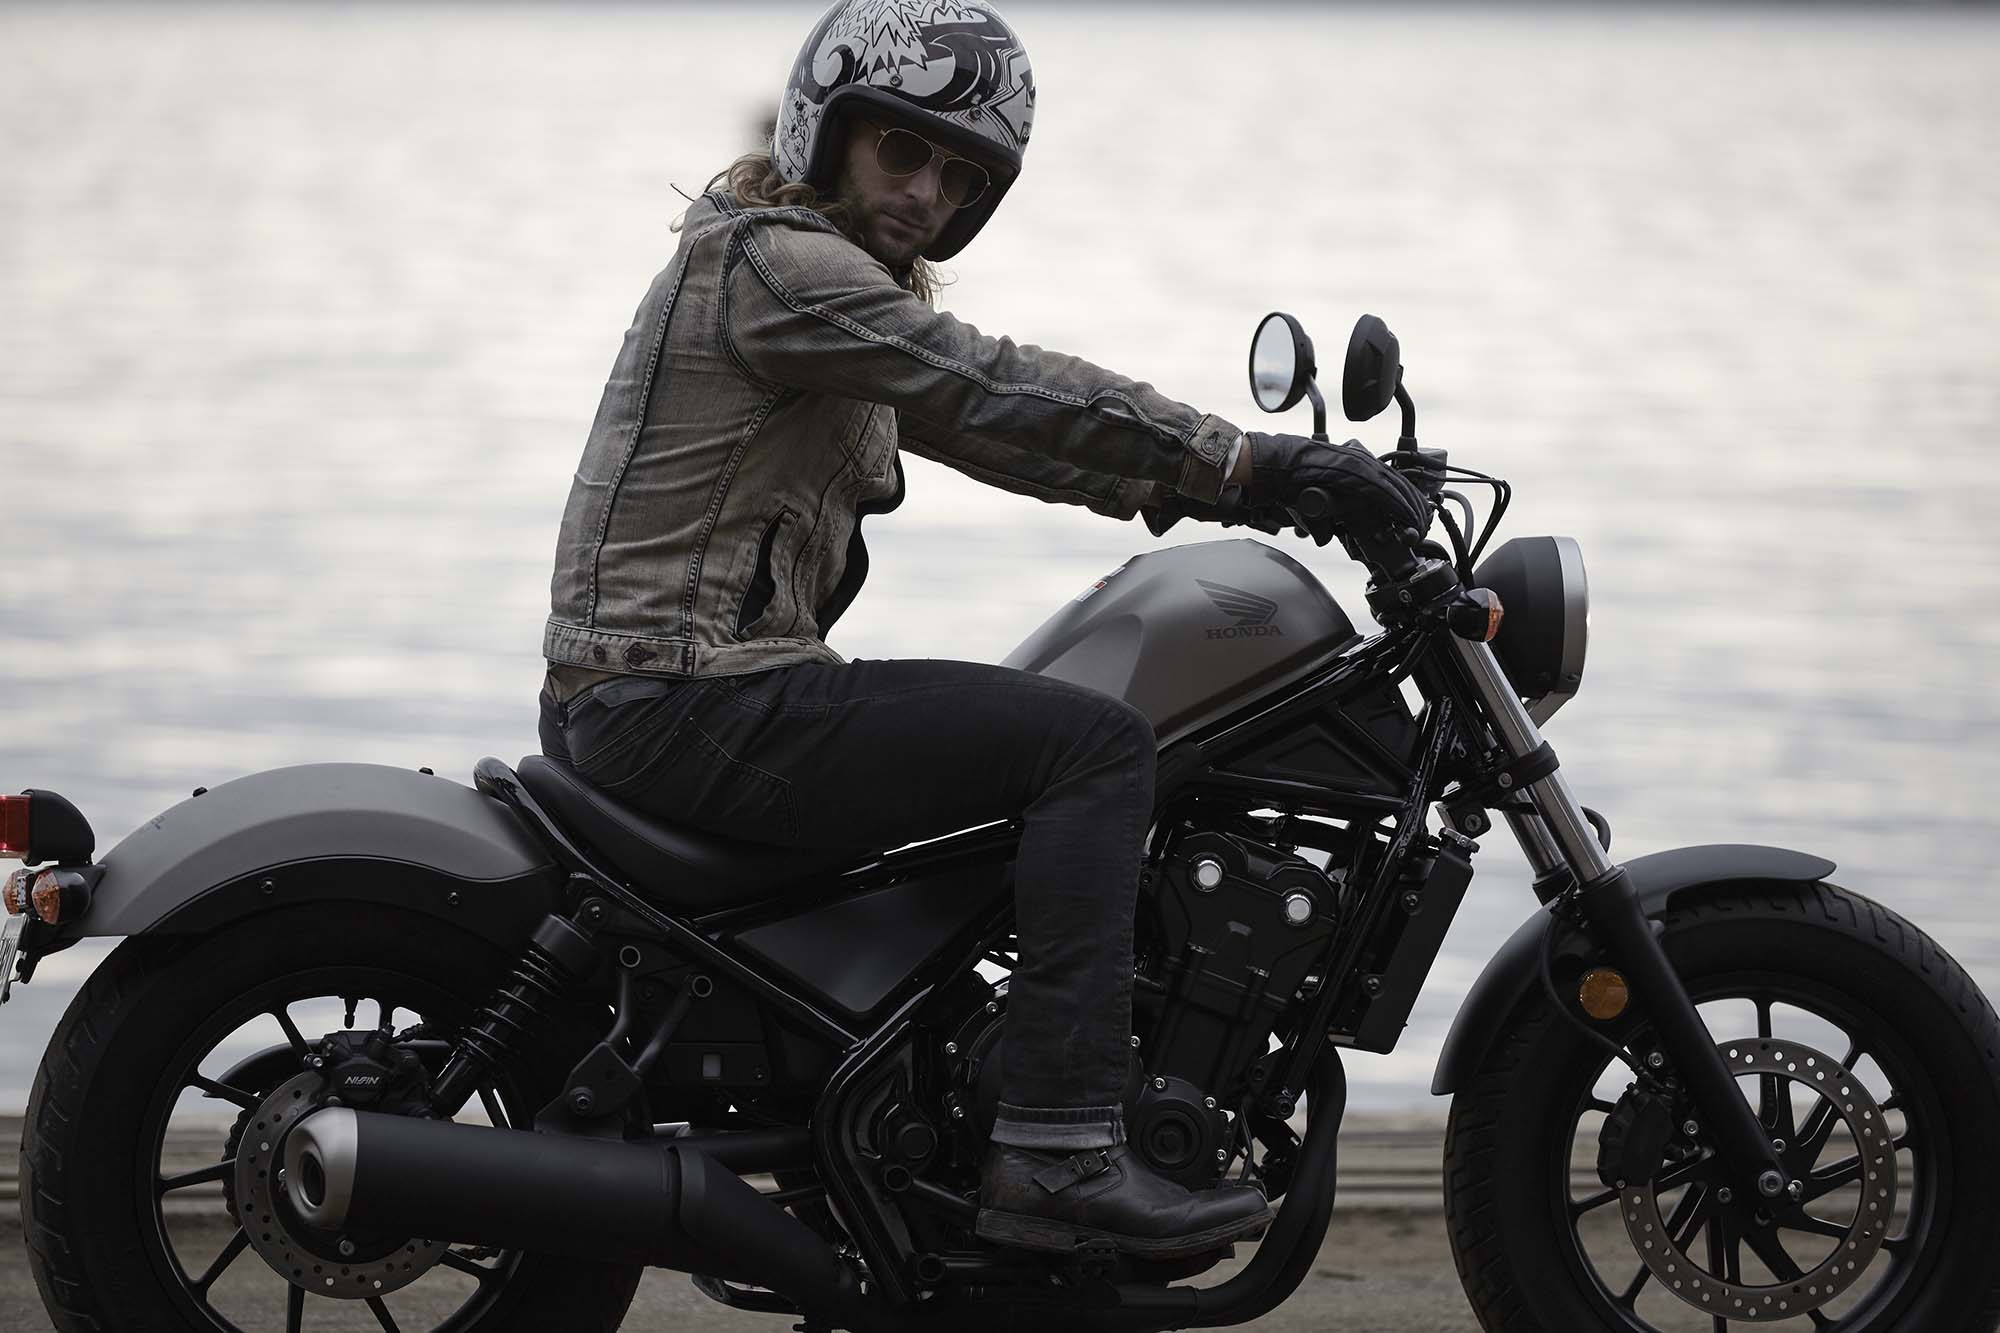 New Honda Rebel 500 Amp Rebel 300 Models Debut